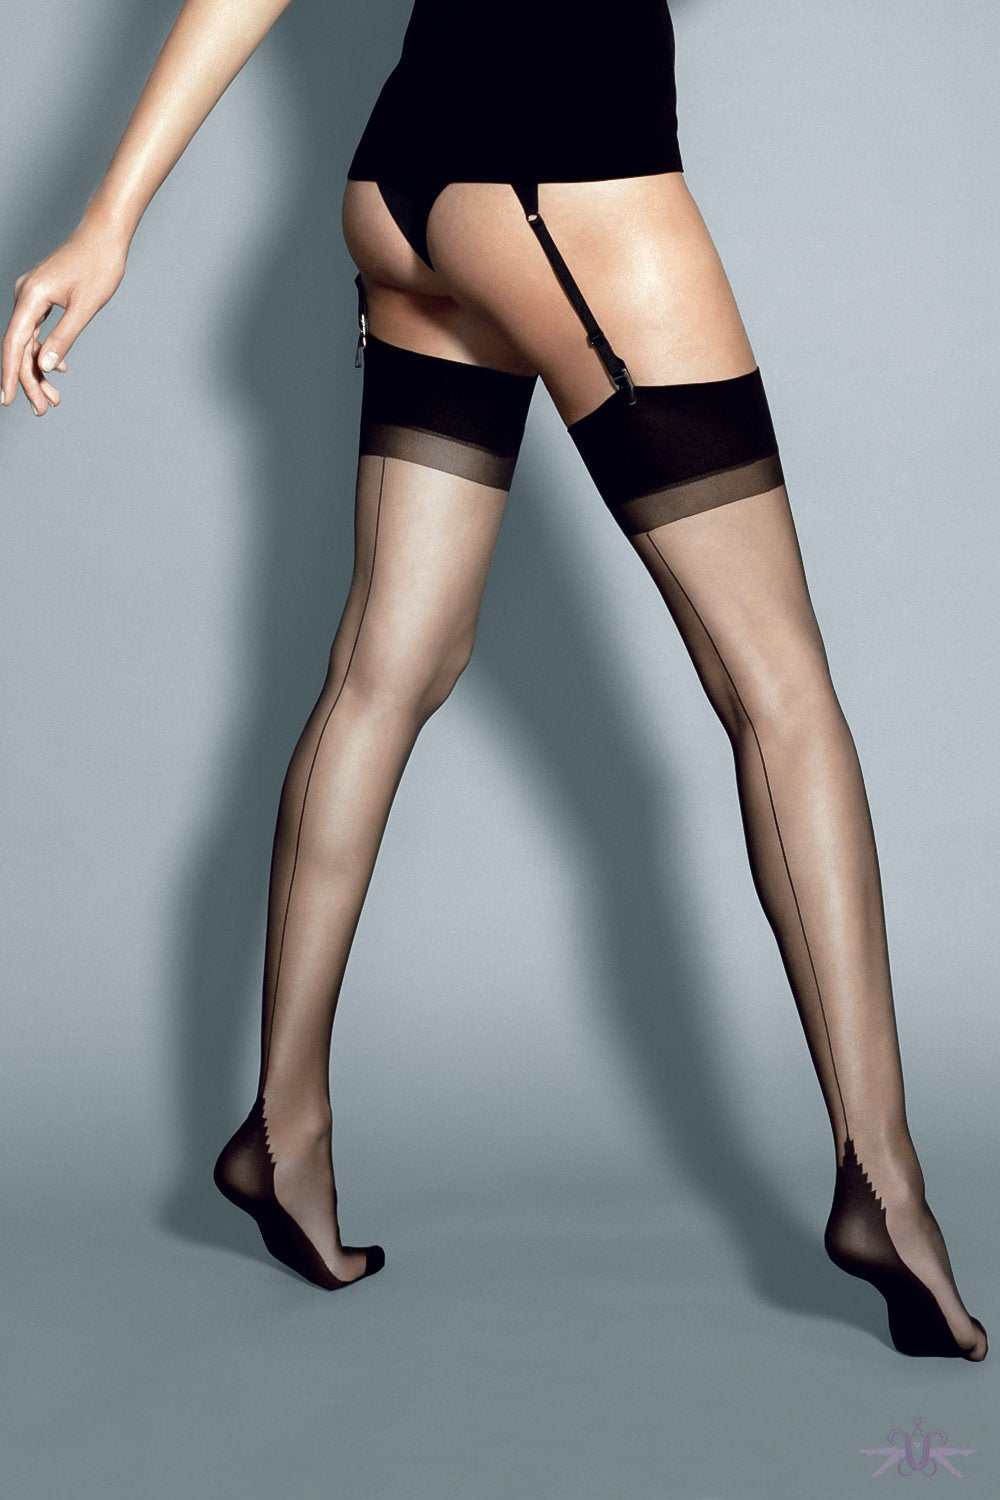 Veneziana Roberta Stockings - Mayfair Stockings